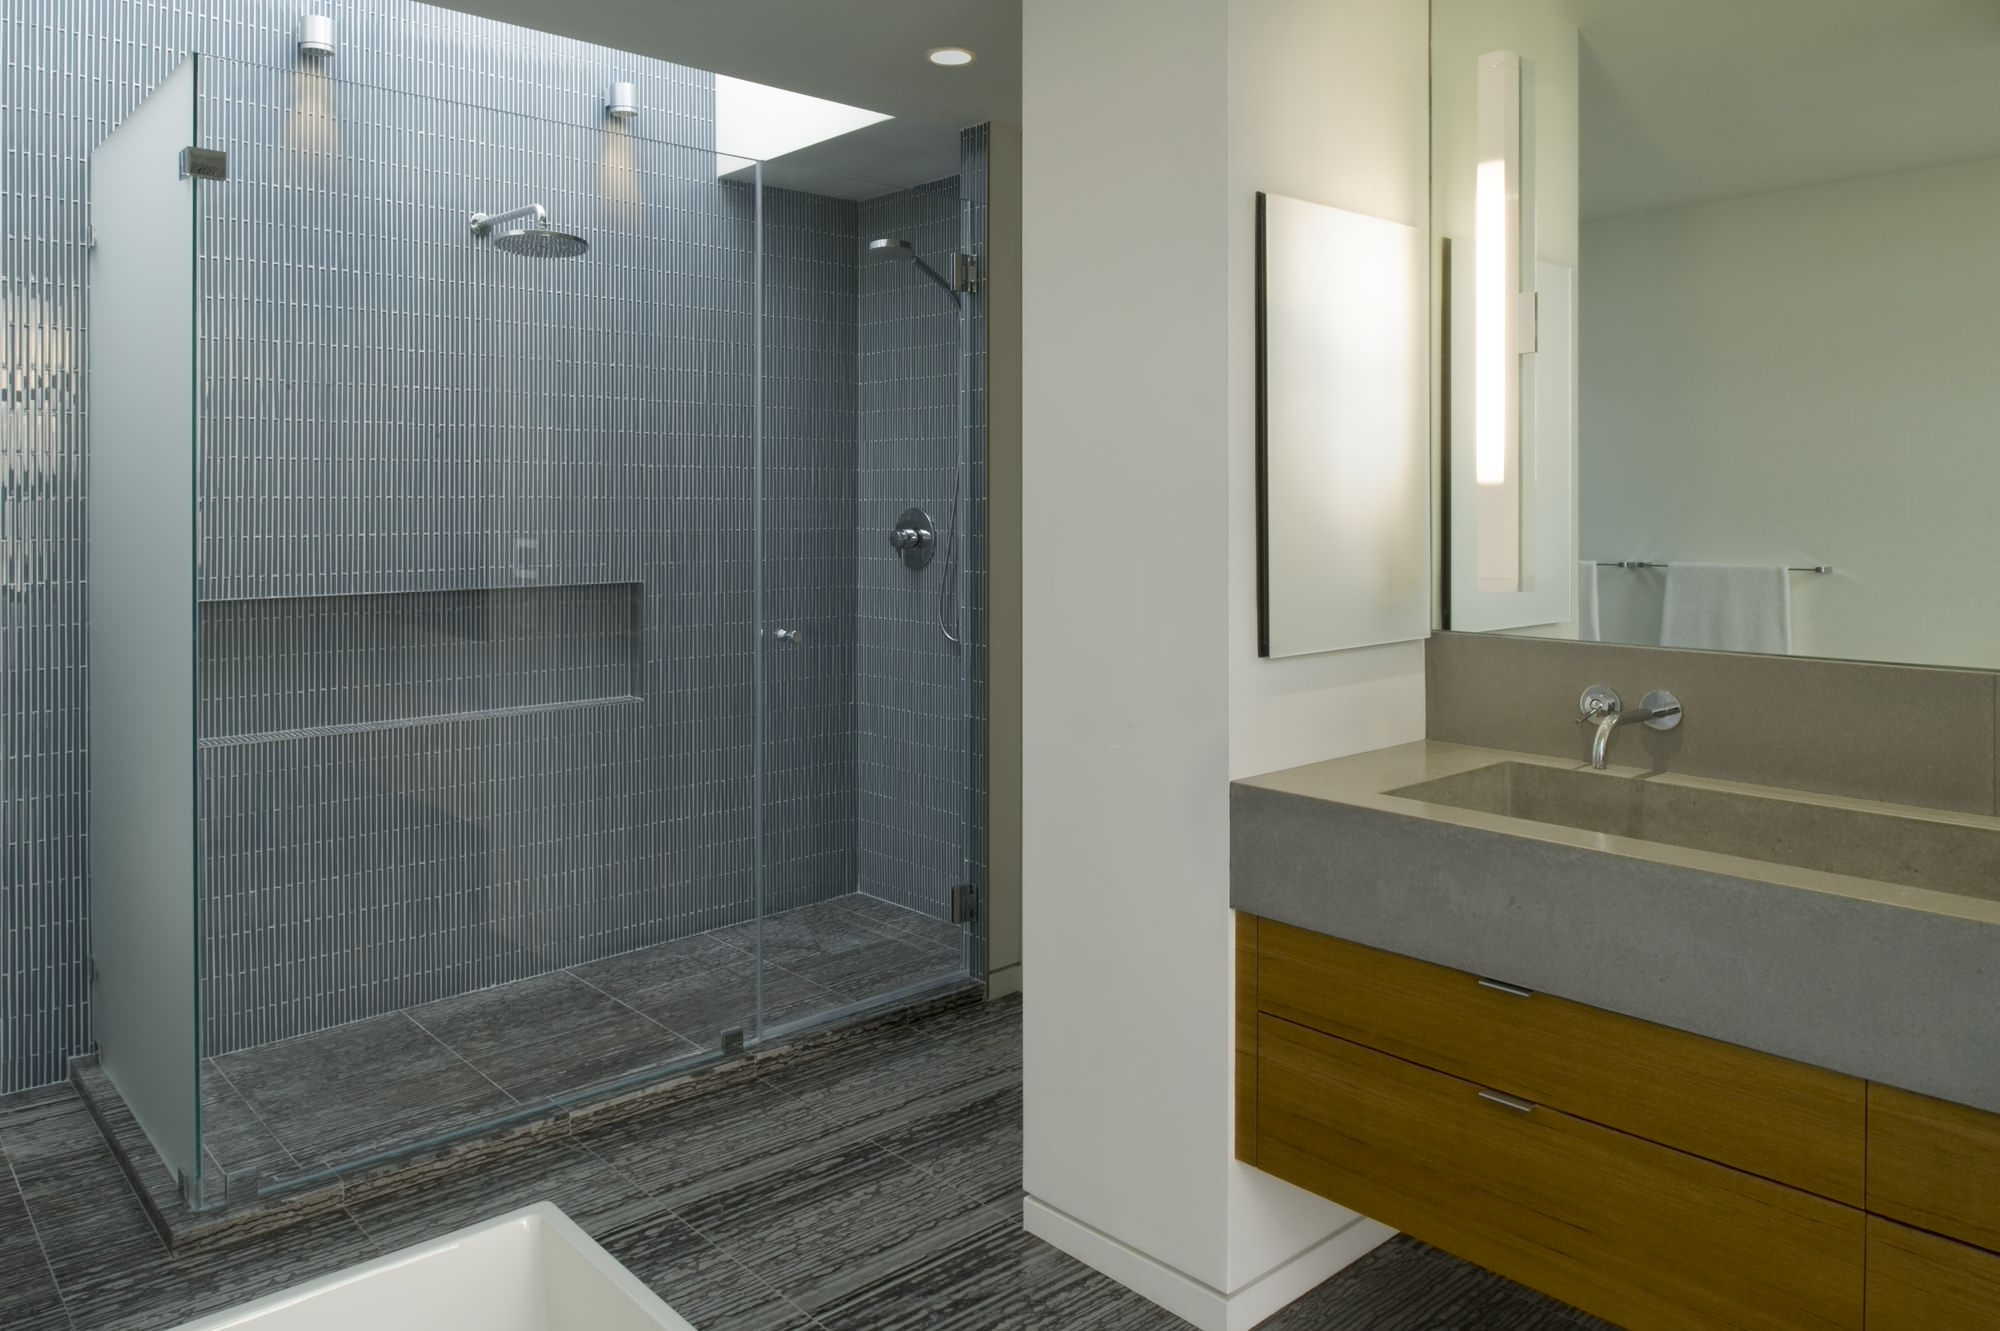 2X2 Modern Bathroom Ideas | Houzz 40+ 2X2 Bathroom Design Ideas